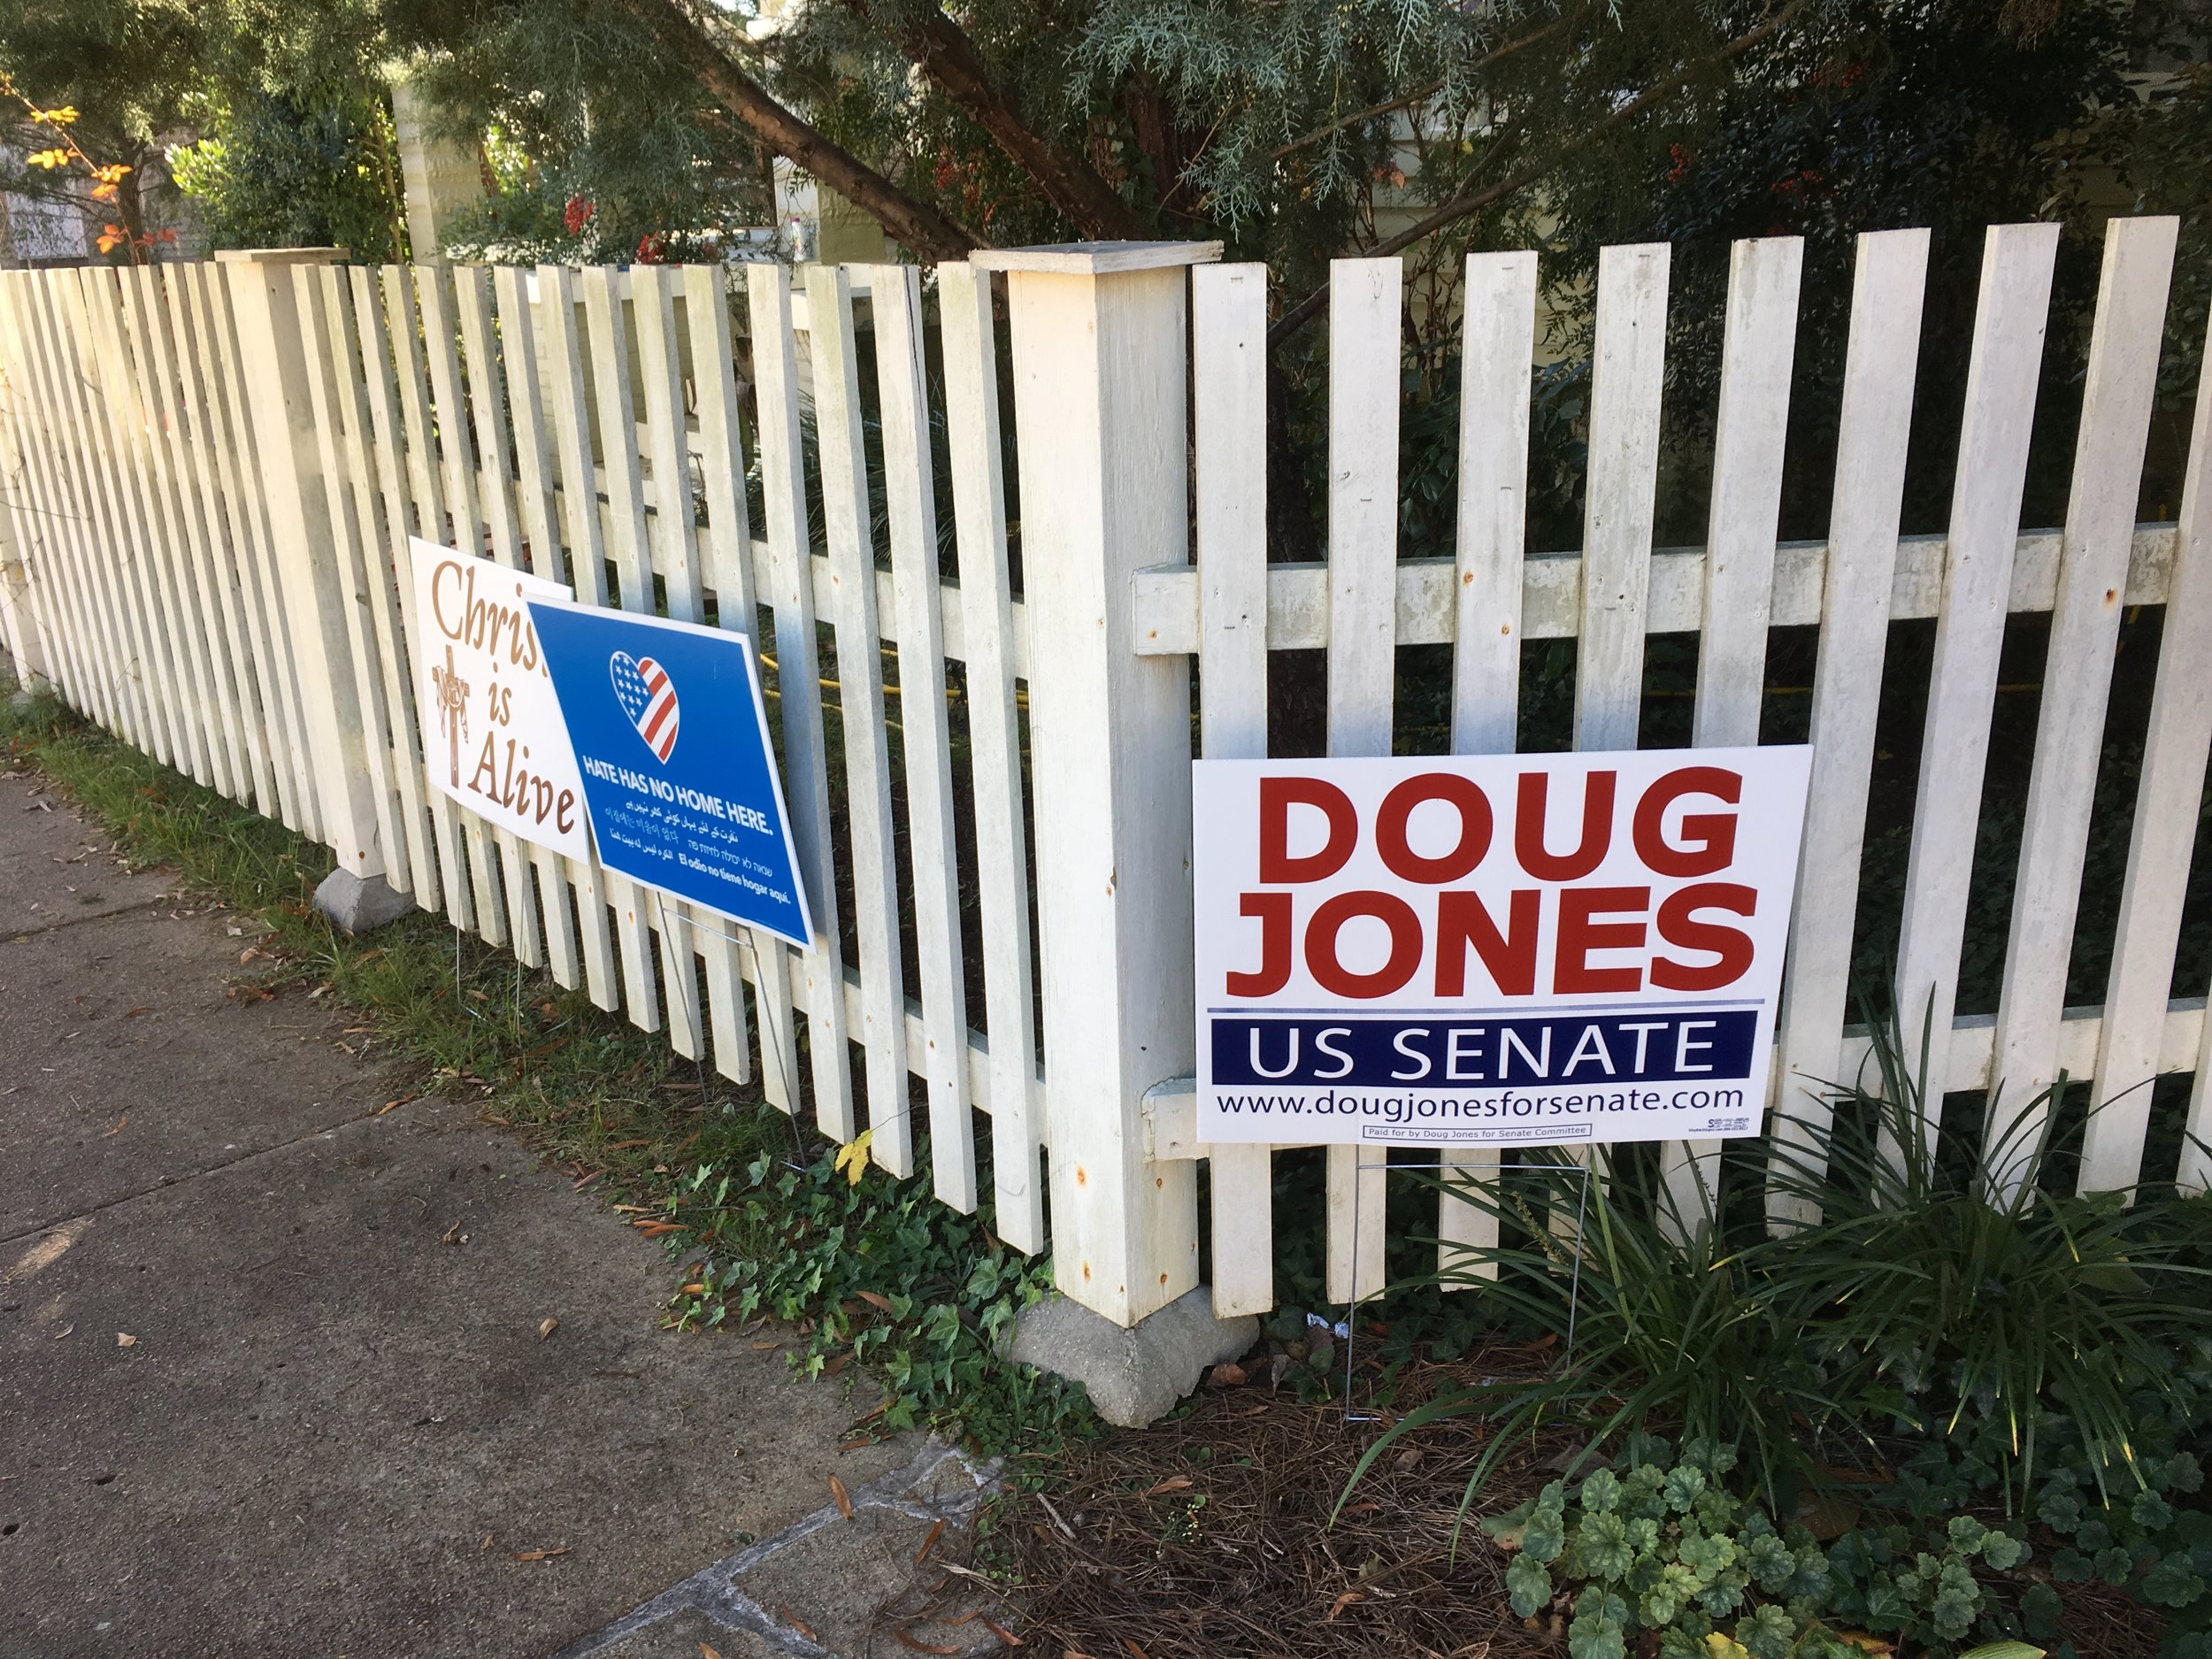 As election day approached, I saw more and more Doug Jones lawn signs on my walks around town.